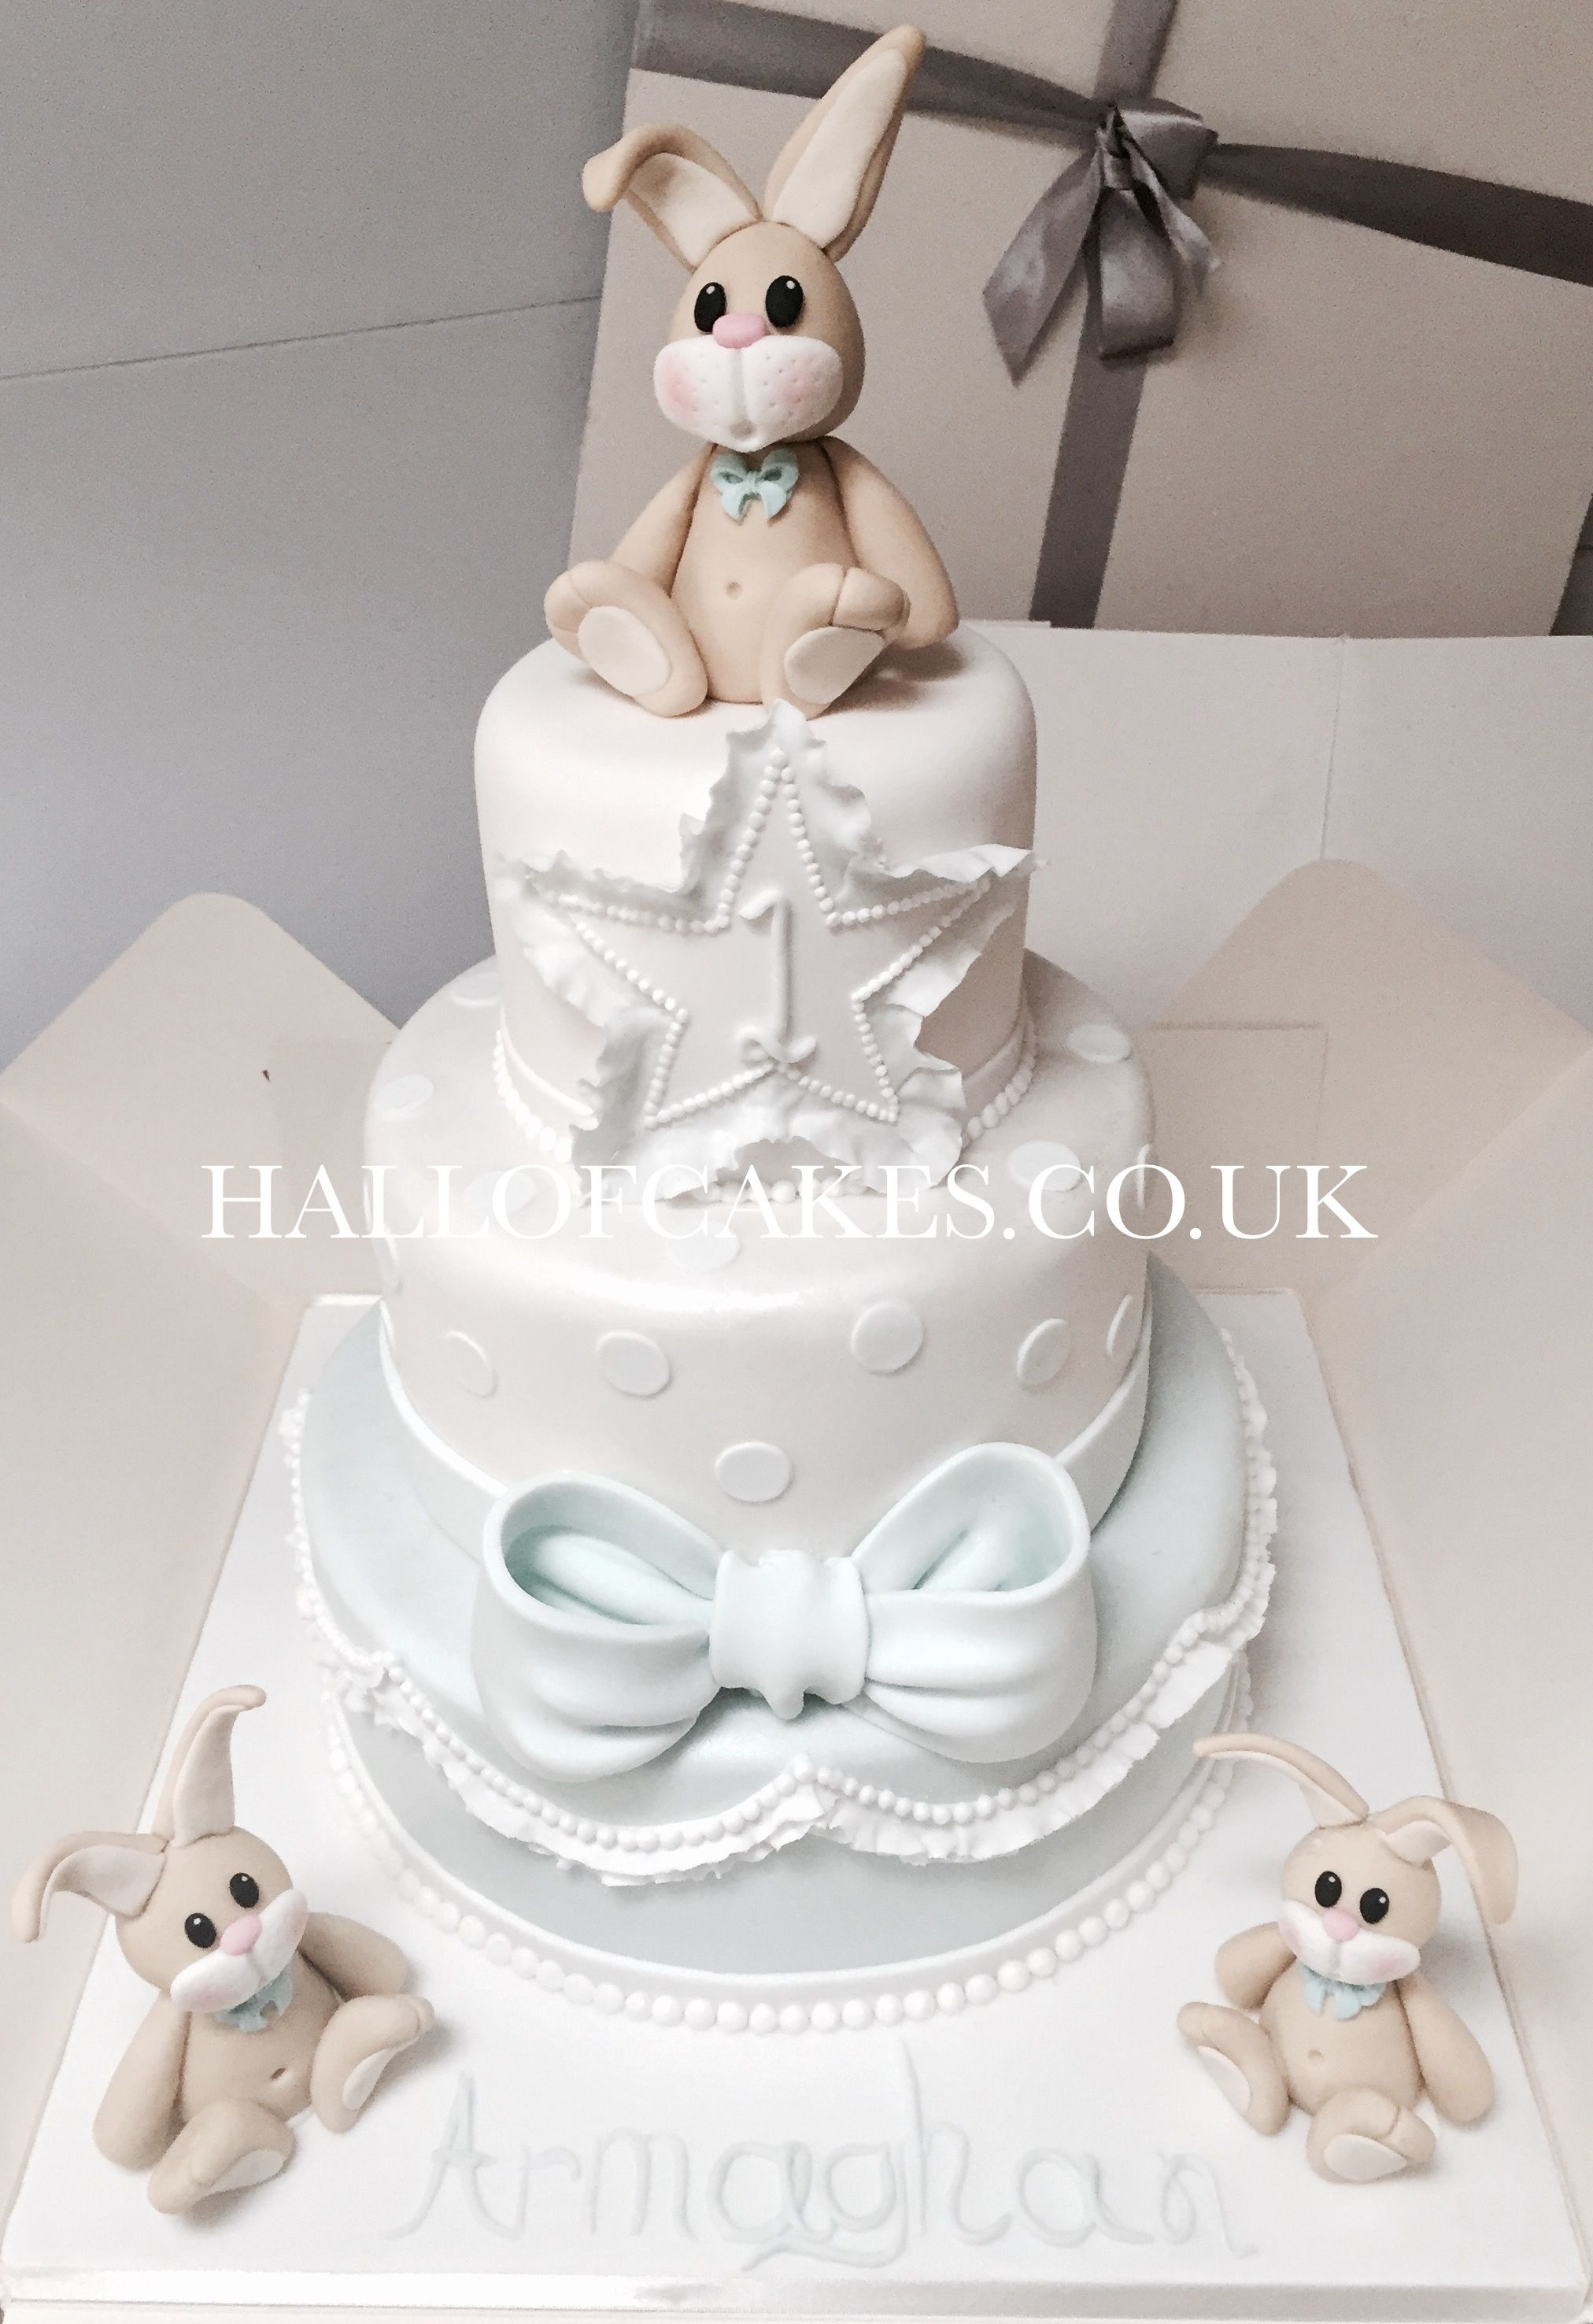 Bunny 1st Birthday Cake by Hall of Cakes Party Novelty and